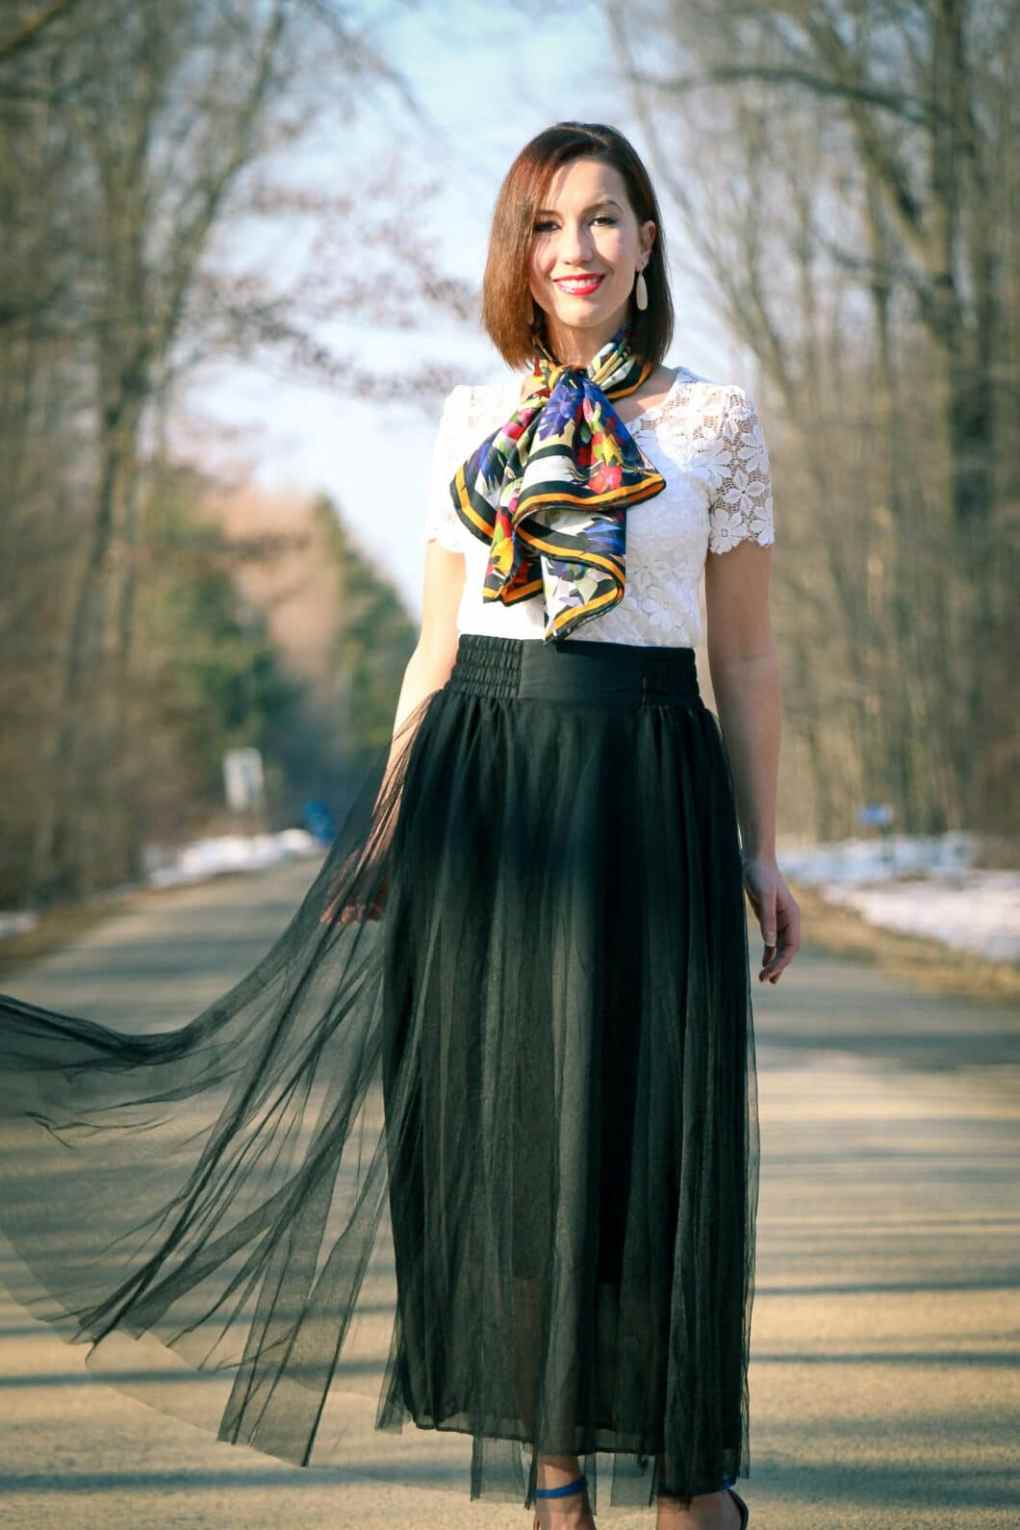 NewChic Tulle Skirt and Demon TZ scarf